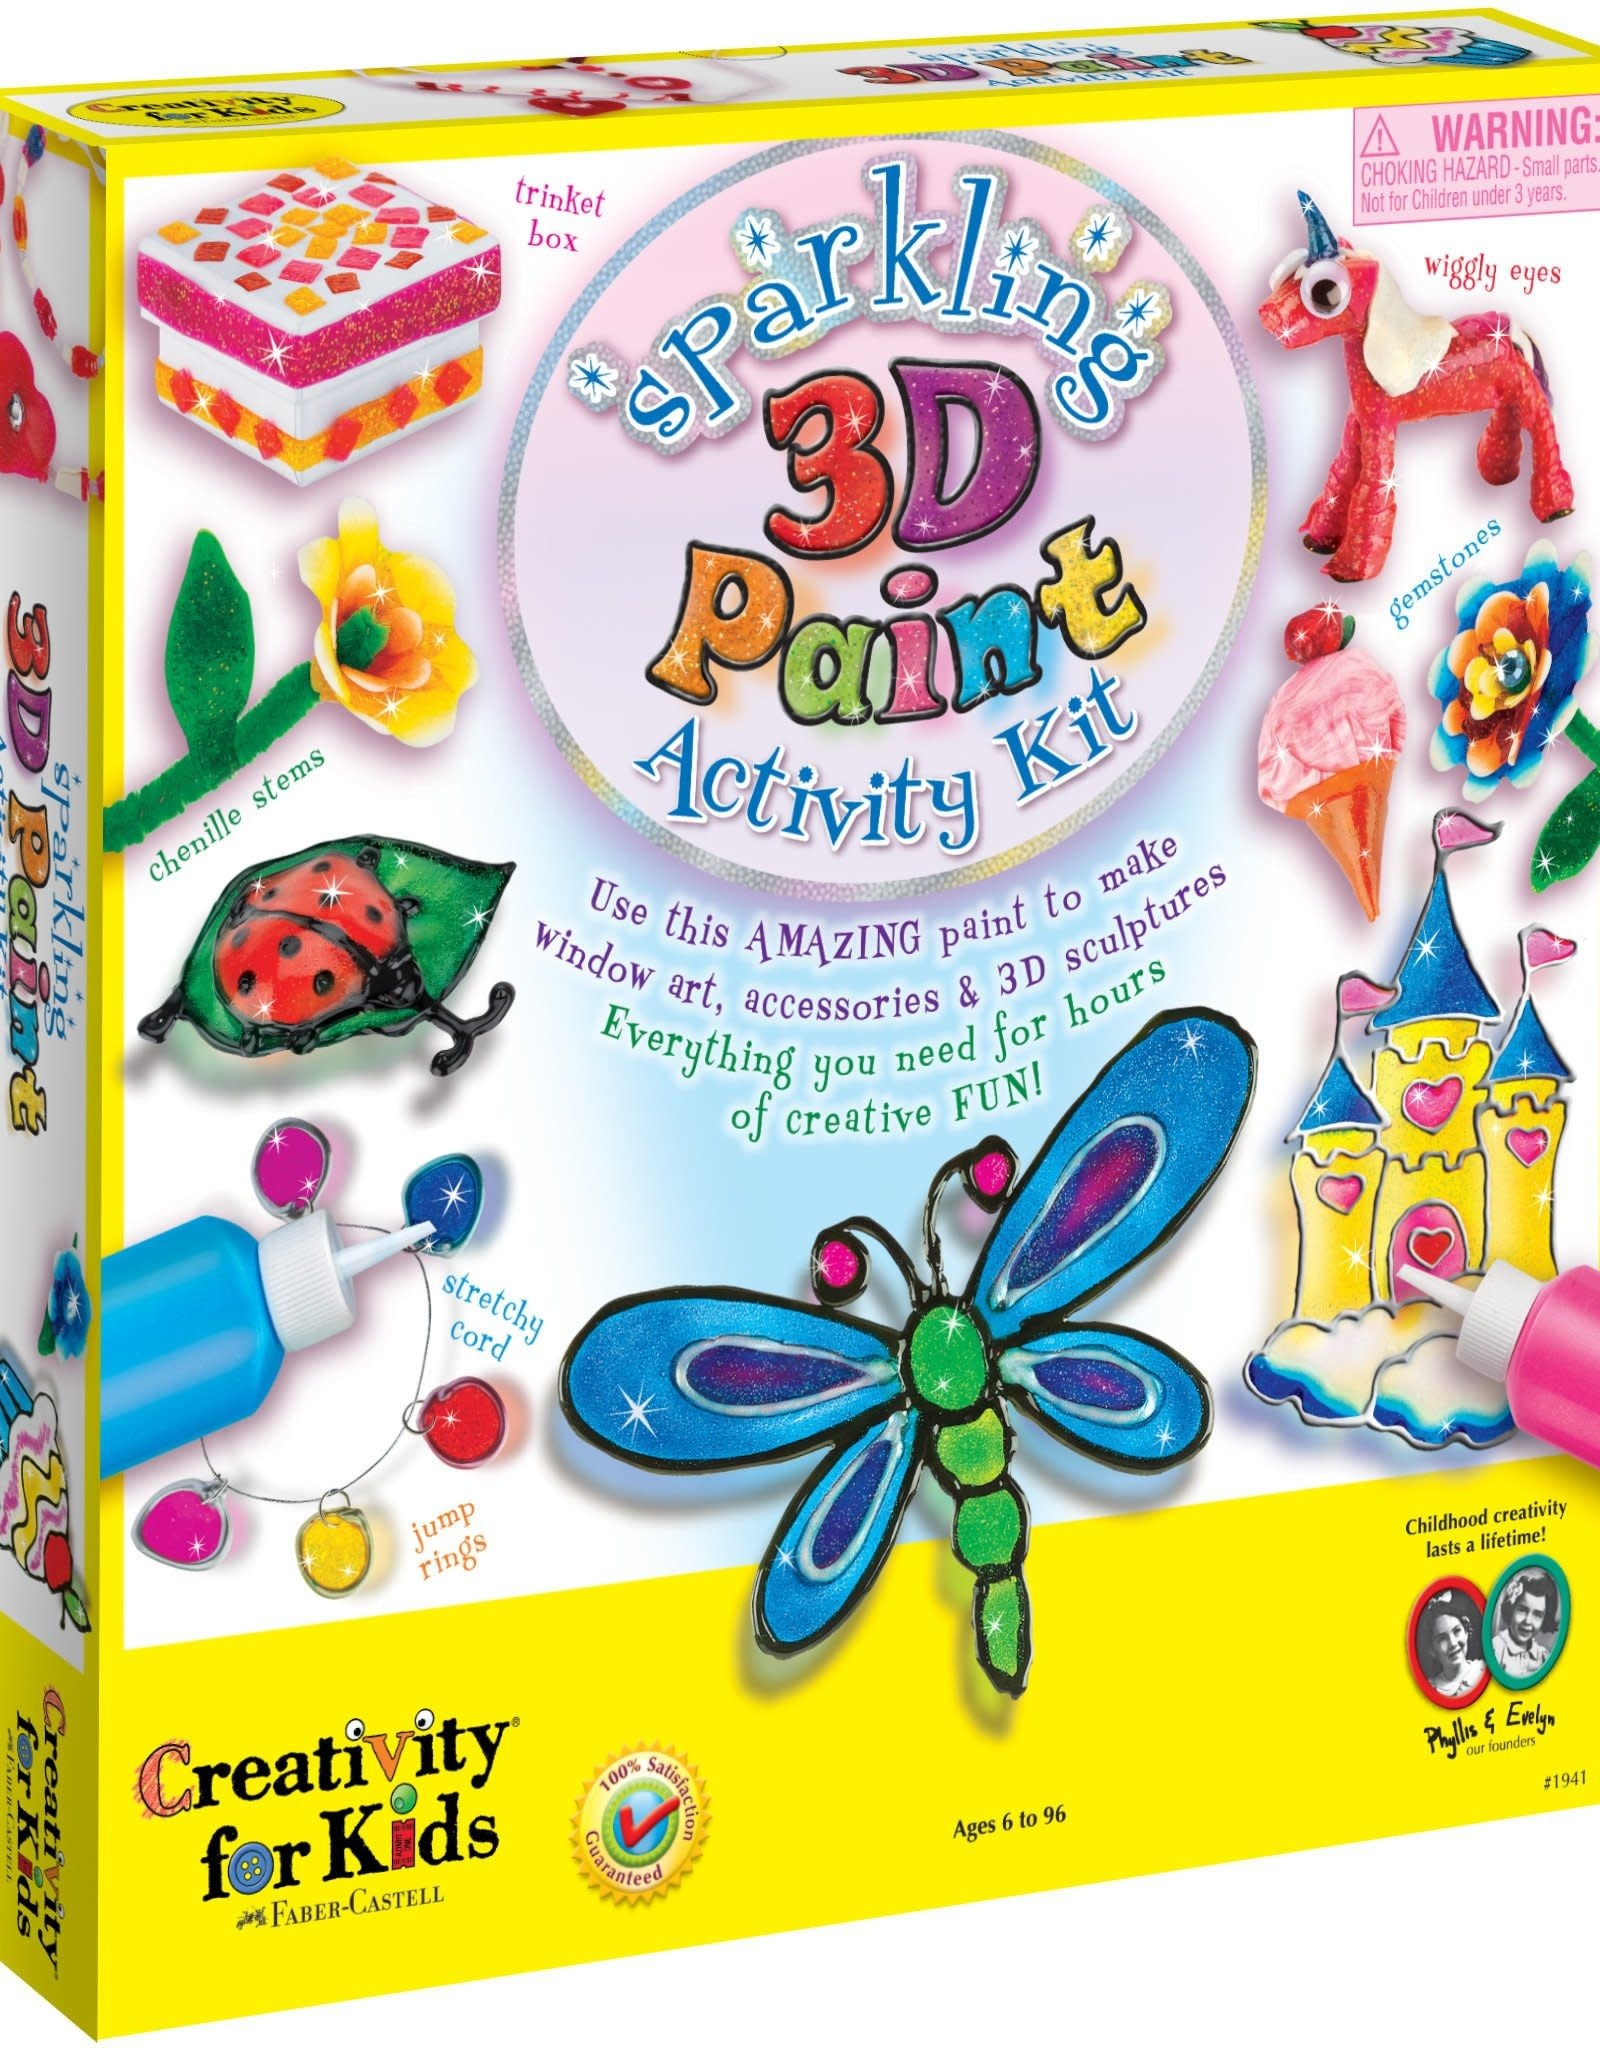 Faber-Castell 3D Paint Activity Kit